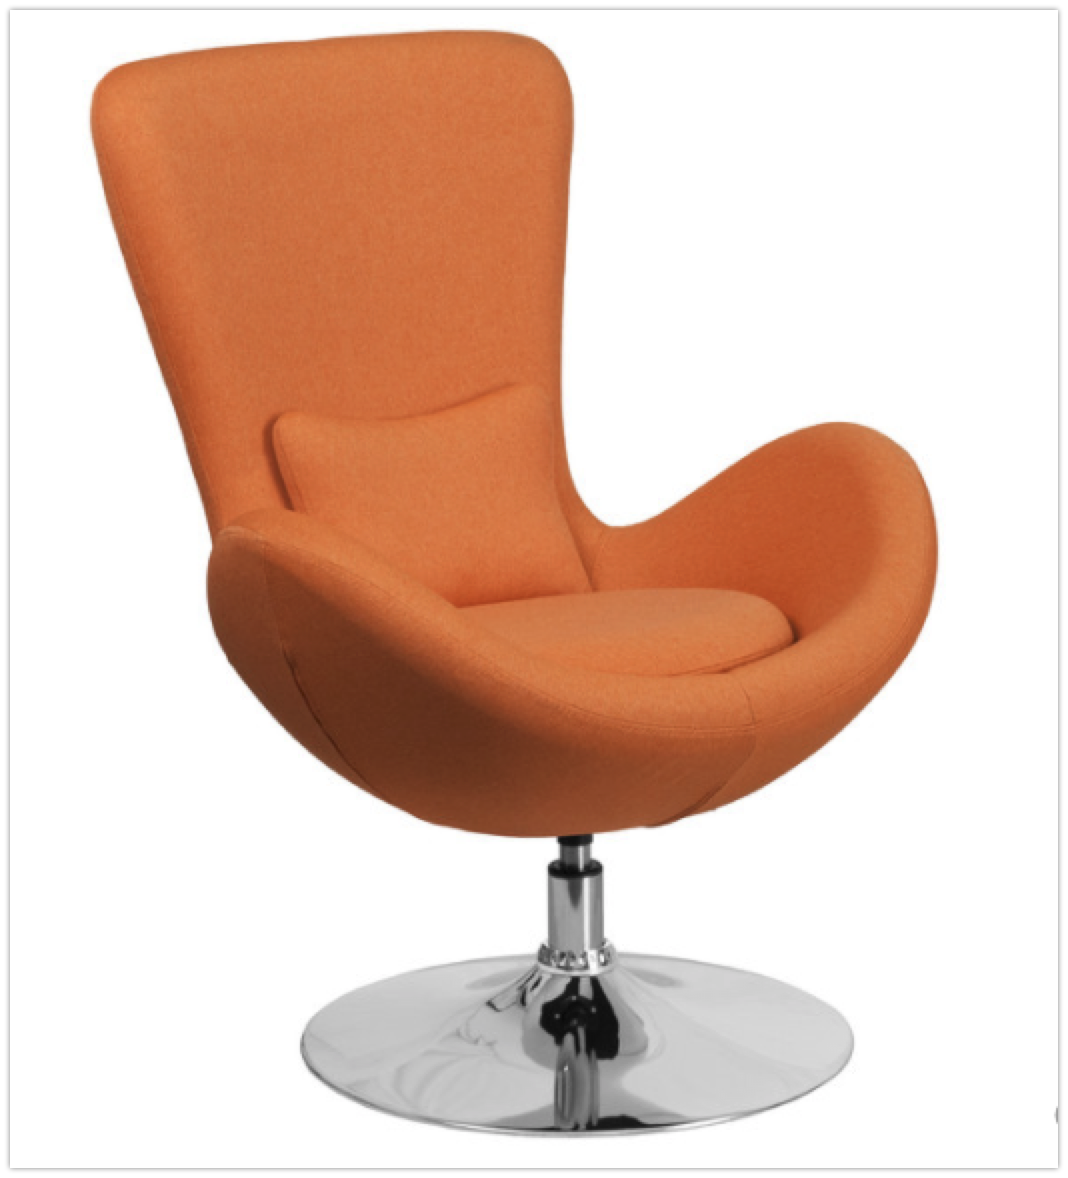 leather-egg-series-chair